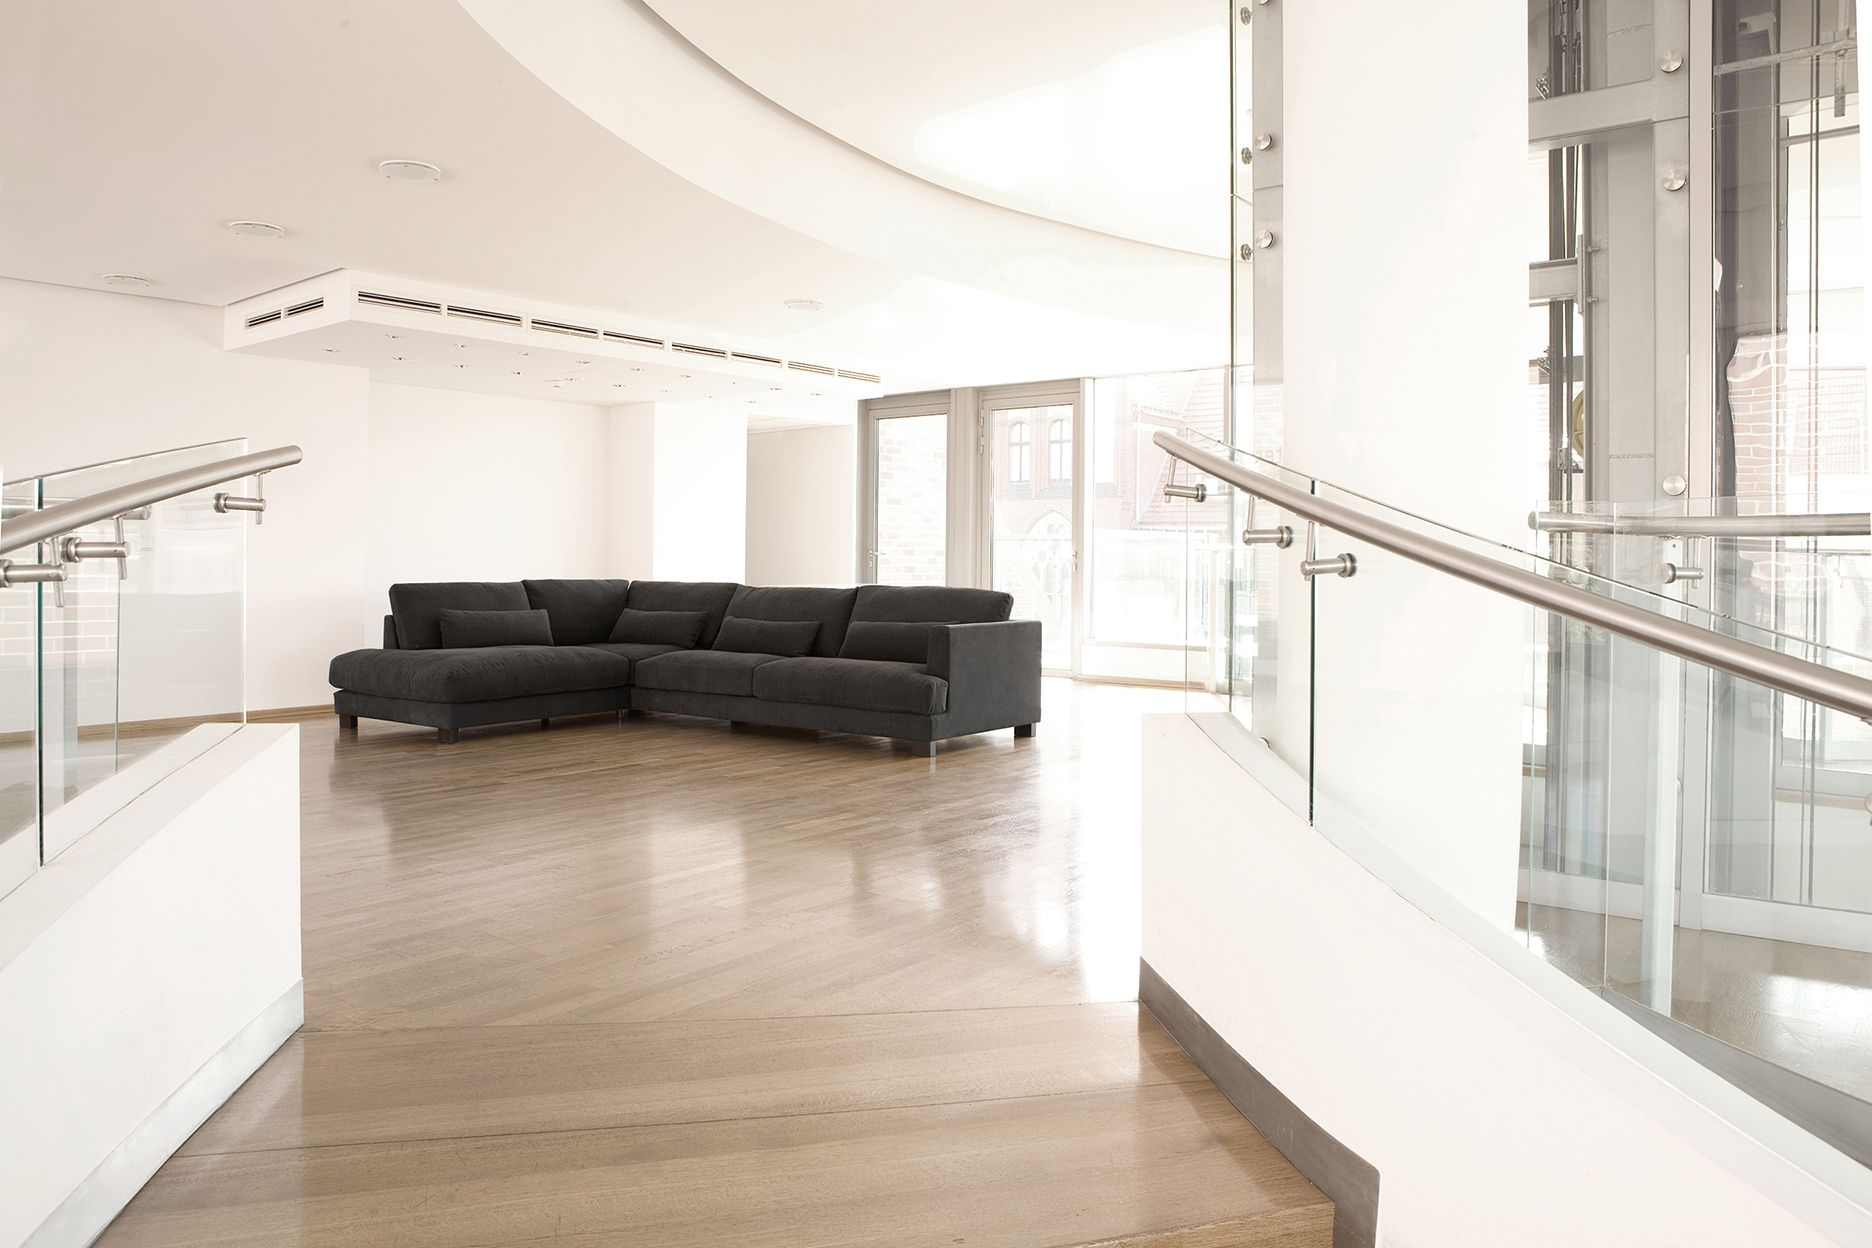 Brandon A Combination Of Simplicity And Comfort With A Limitless Range Of Sizes And Options To